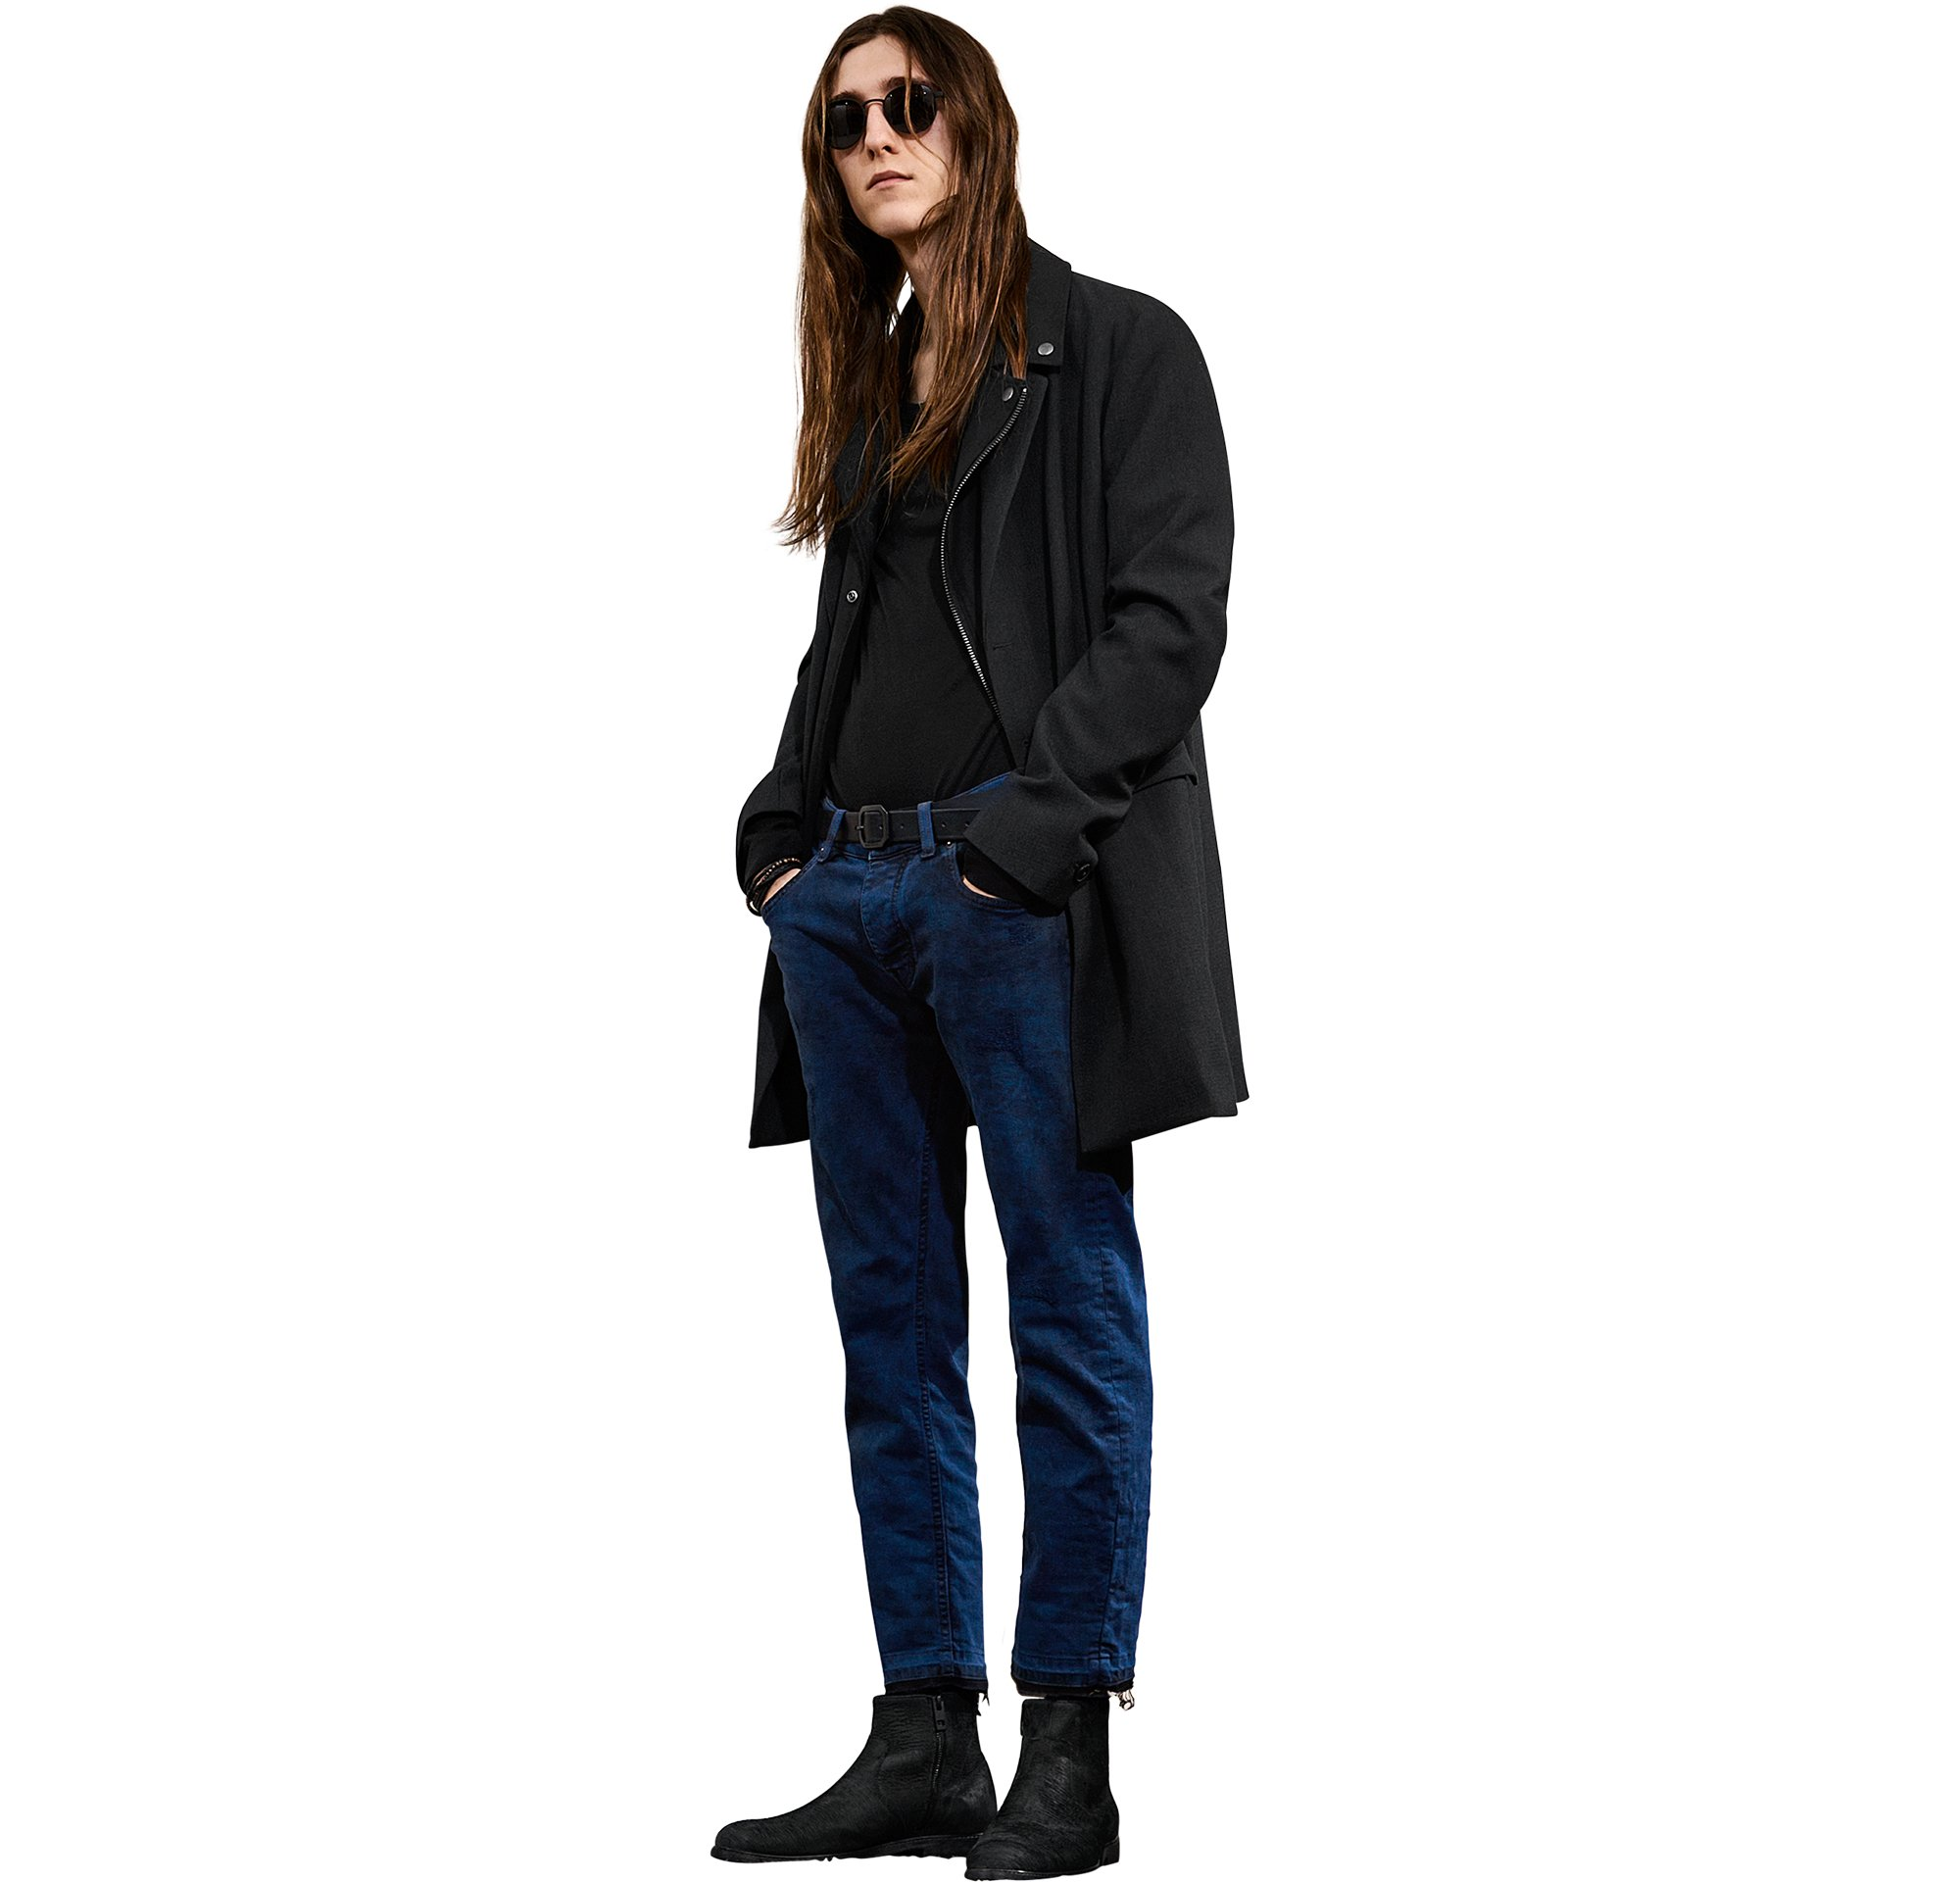 Black jacket over vblack jersey and blue jeans with black shoes by BOSS Orange